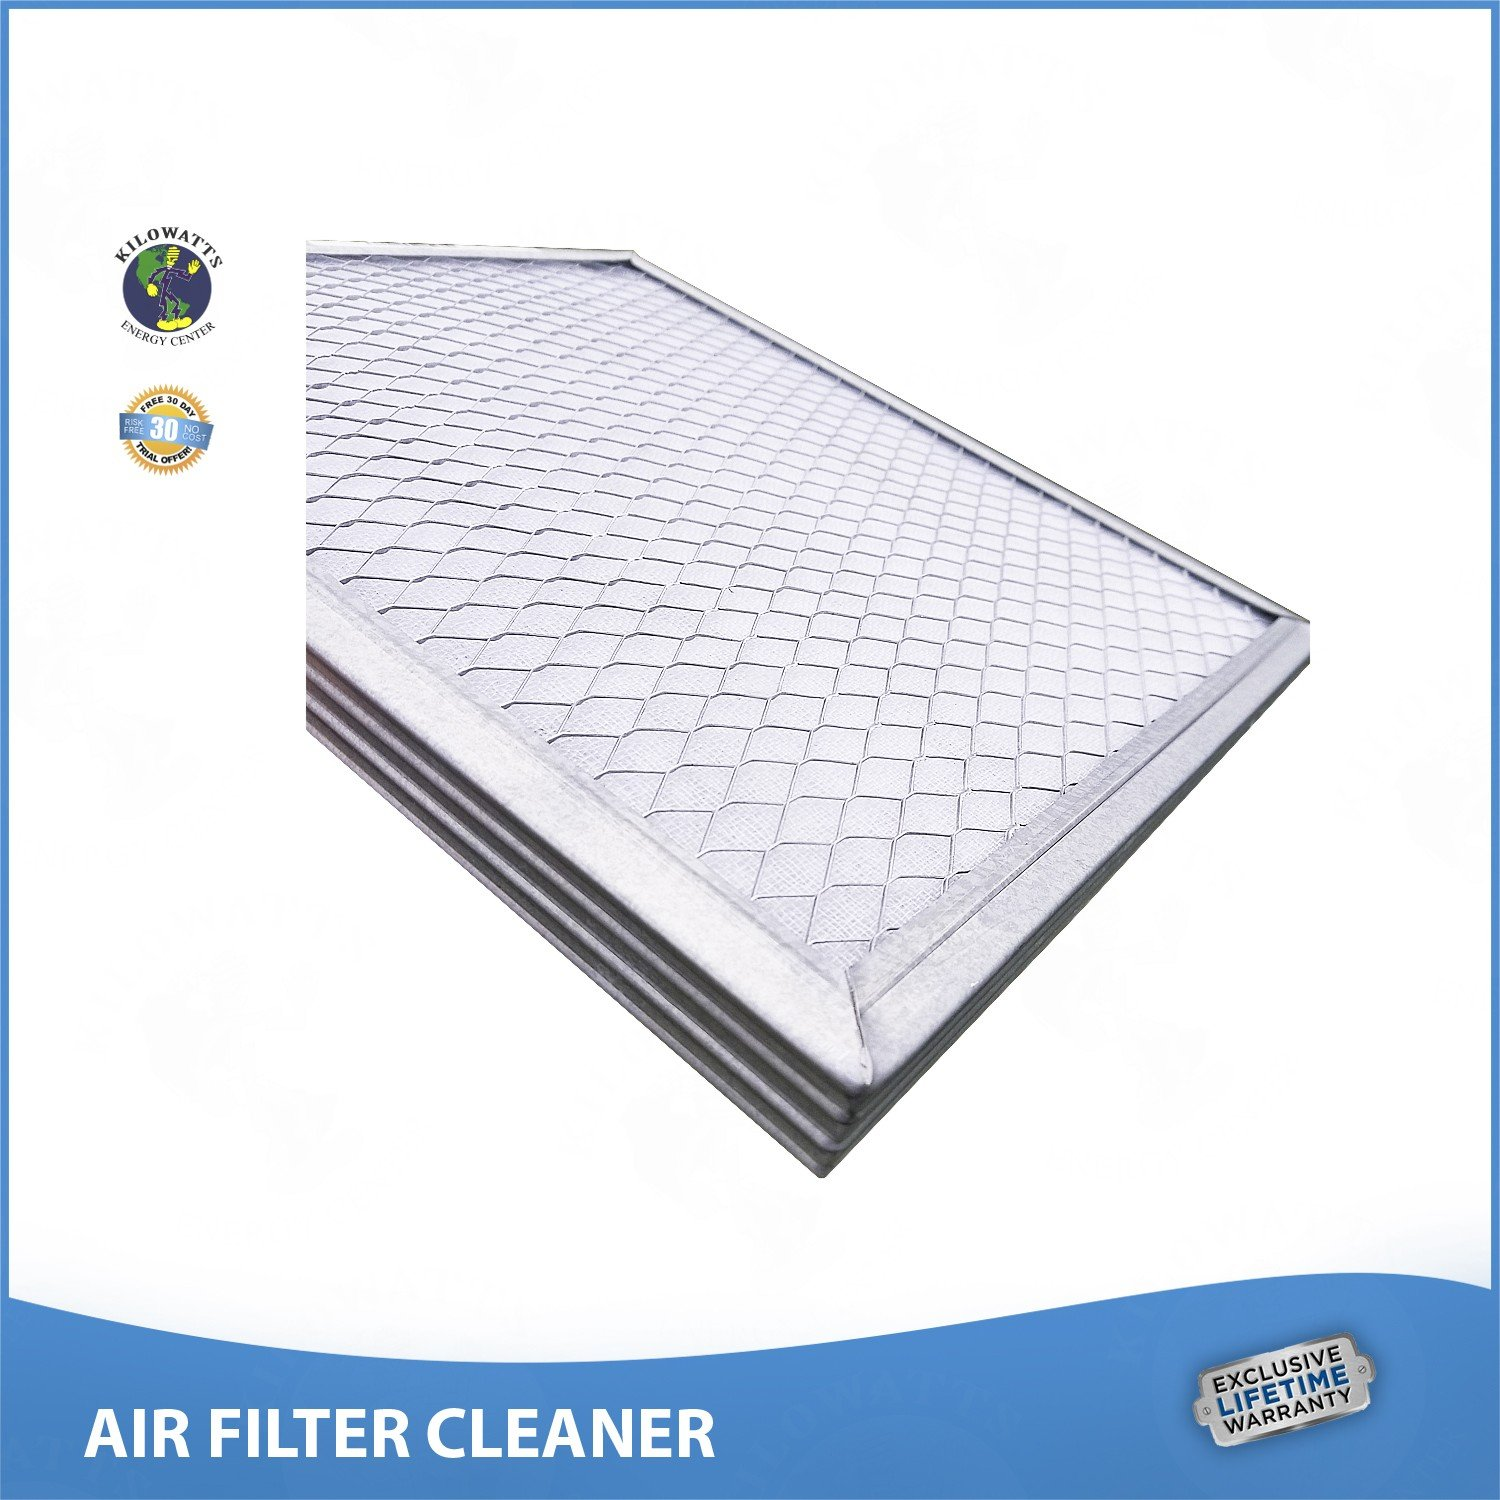 14x25x1 Lifetime Air Filter - Electrostatic Washable Permanent A/C Silver Steel Frame 65% more efficiency by Kilowatts Energy Center (Image #5)